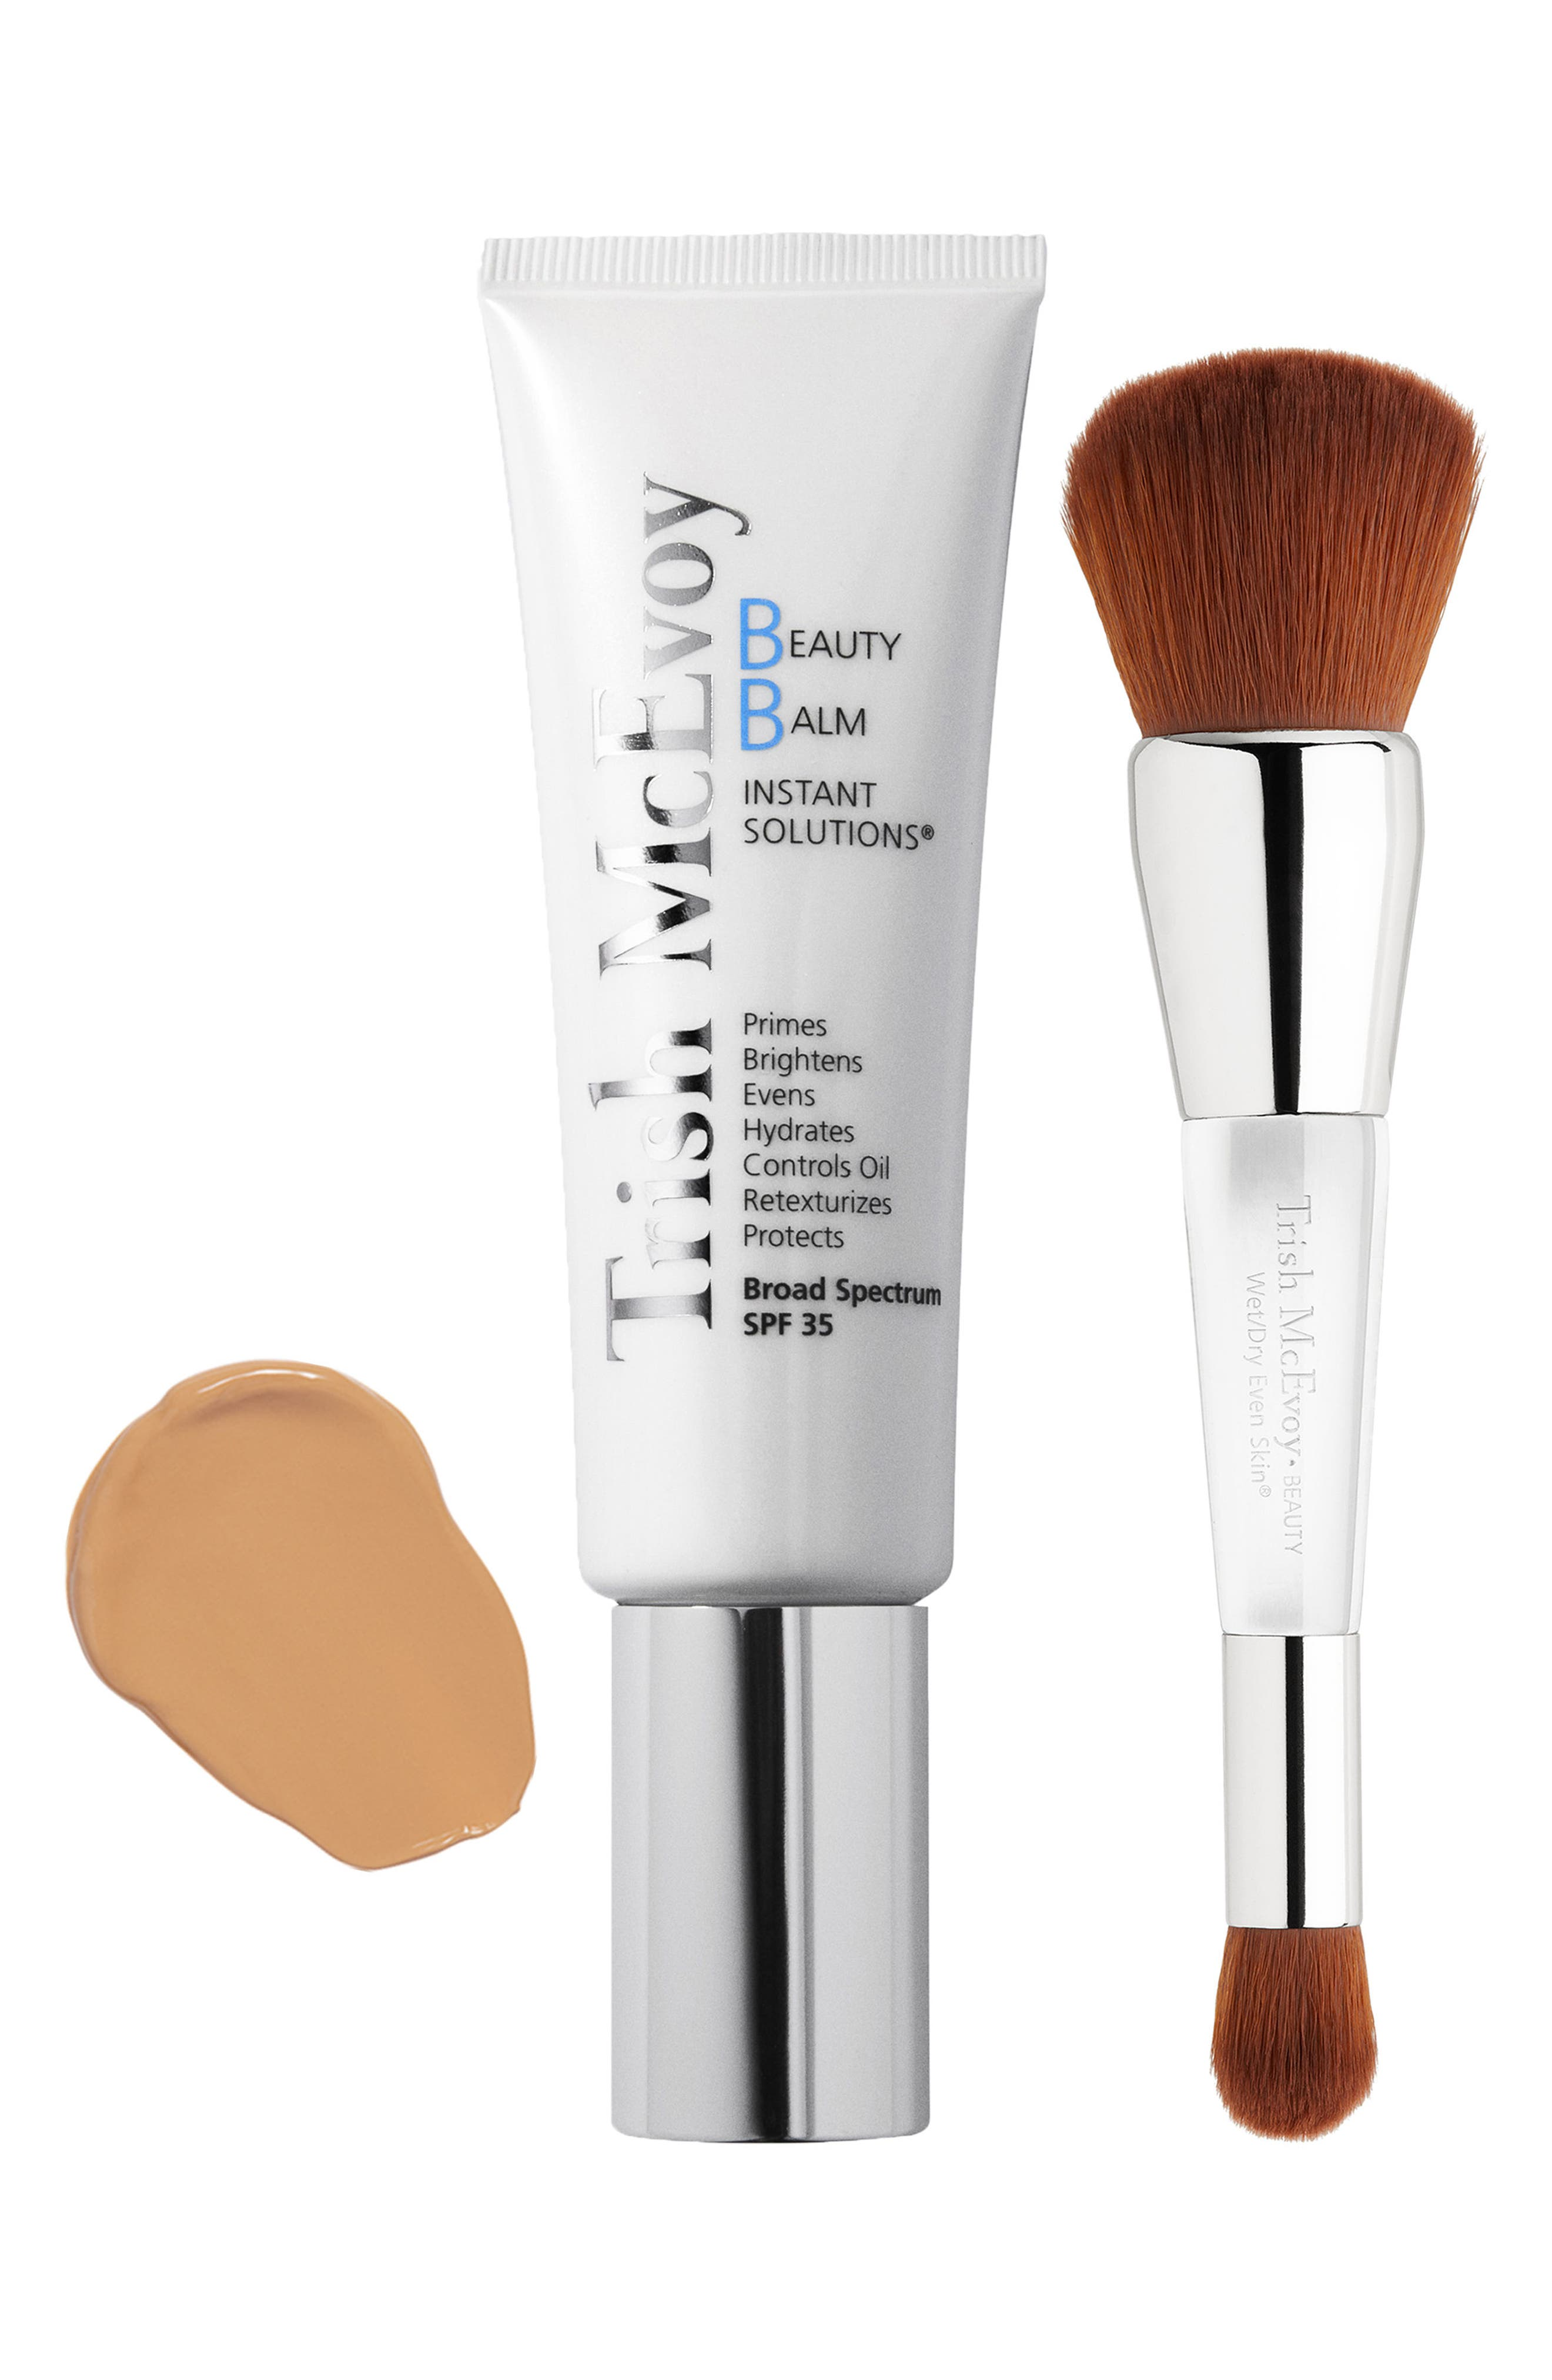 Trish McEvoy Beauty Balm & Wet/Dry Brush Set (Nordstrom Exclusive) ($146 Value)